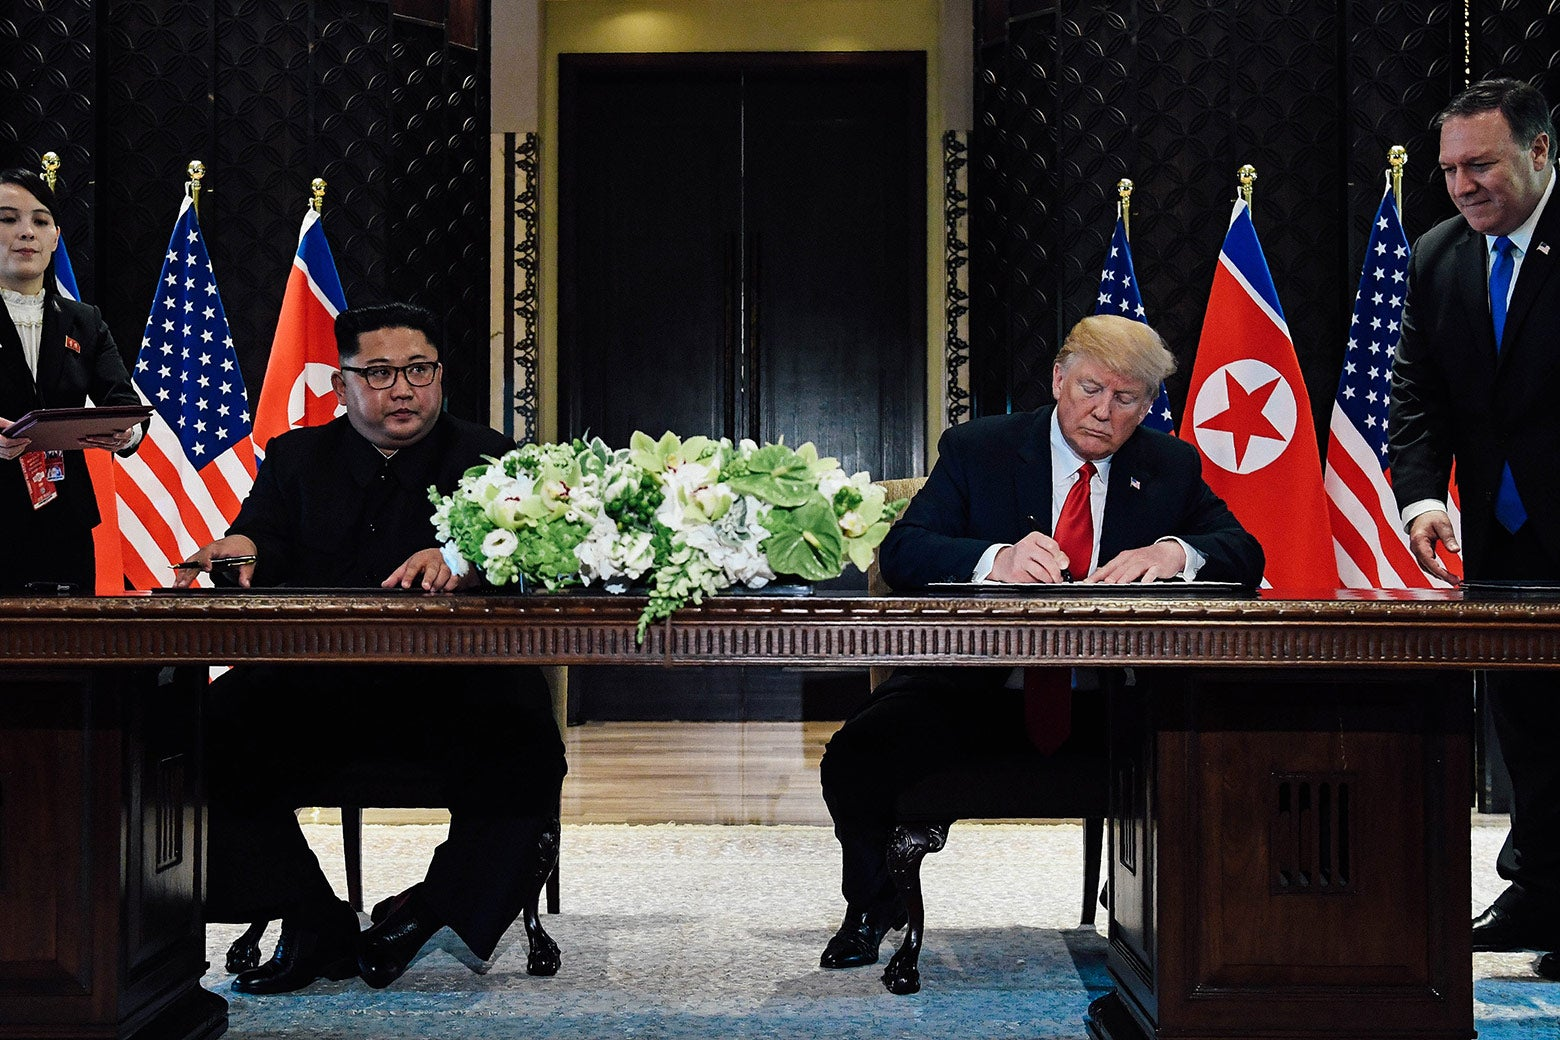 Kim Jong-un and Donald Trump seated at a large desk, signing documents.